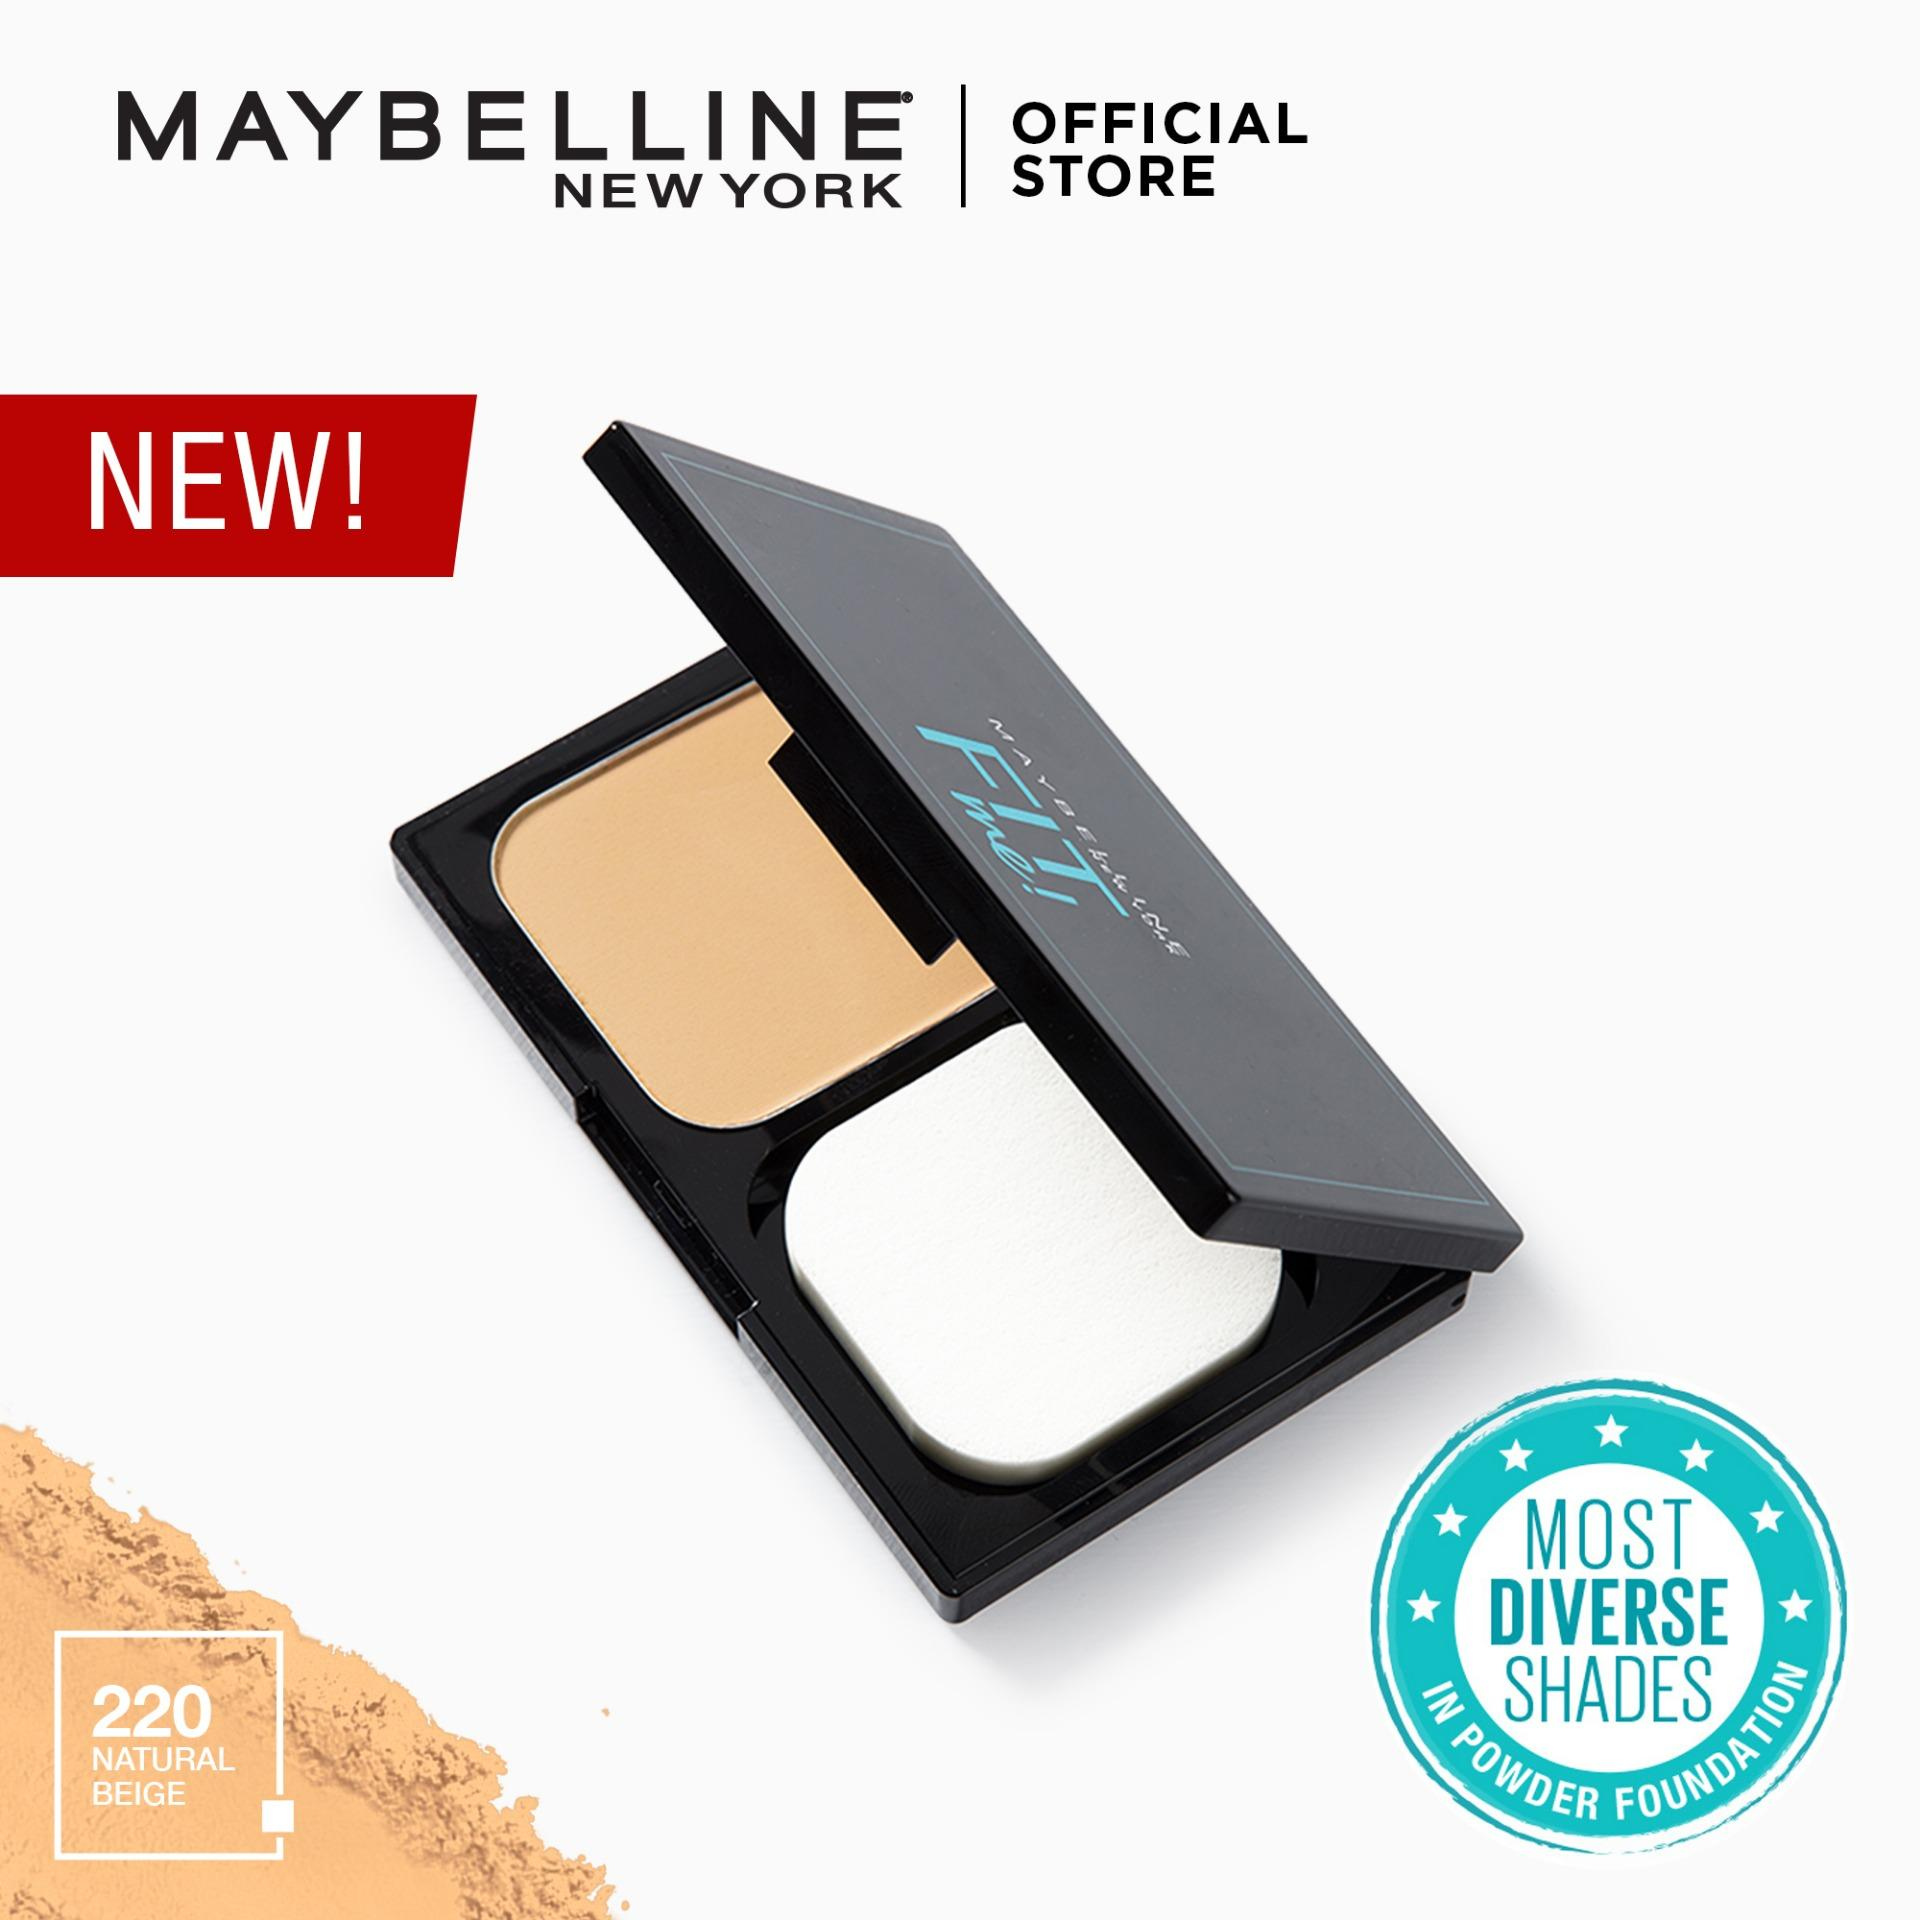 Fit Me Powder Foundation By Maybelline By Maybelline.